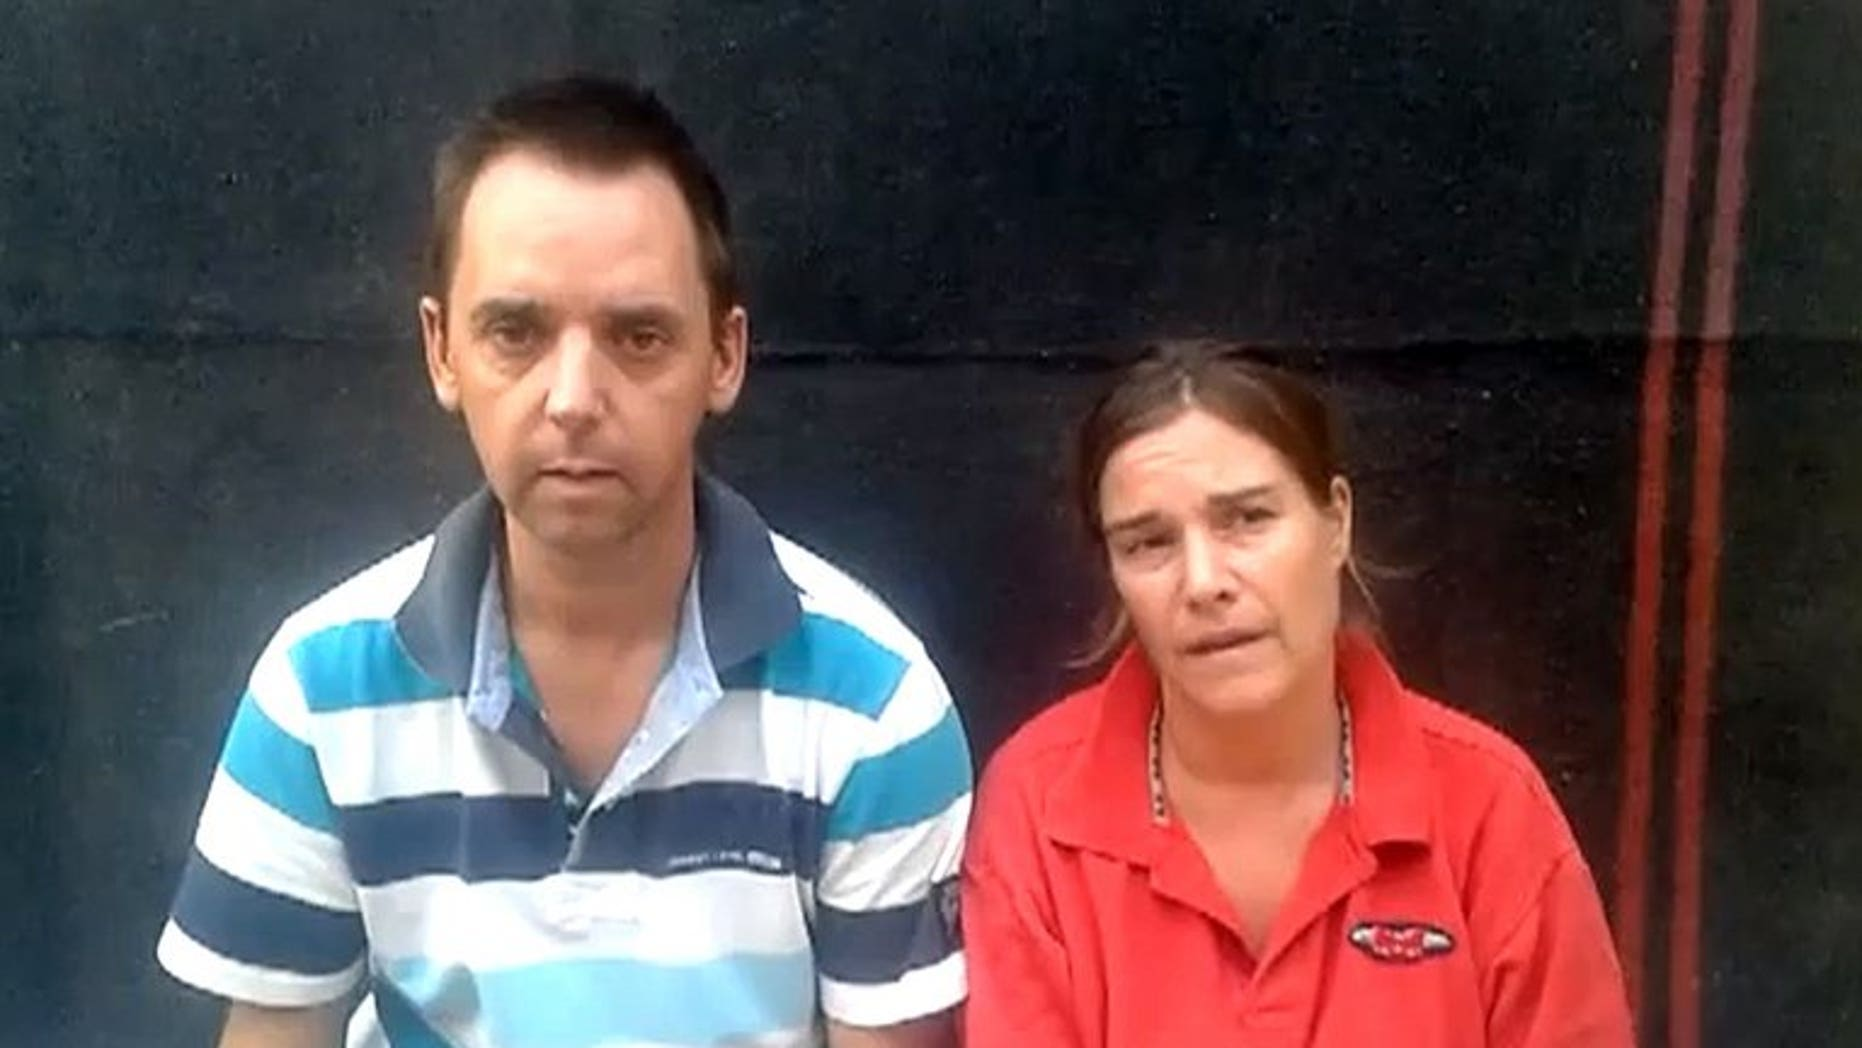 An image grabbed from a video dated July 13, 2013 and posted on YouTube and Facebook on July 16, 2013 shows Dutch nationals Judith Spiegel and her partner Boudewijn Berendsen speaking at an undisclosed location.